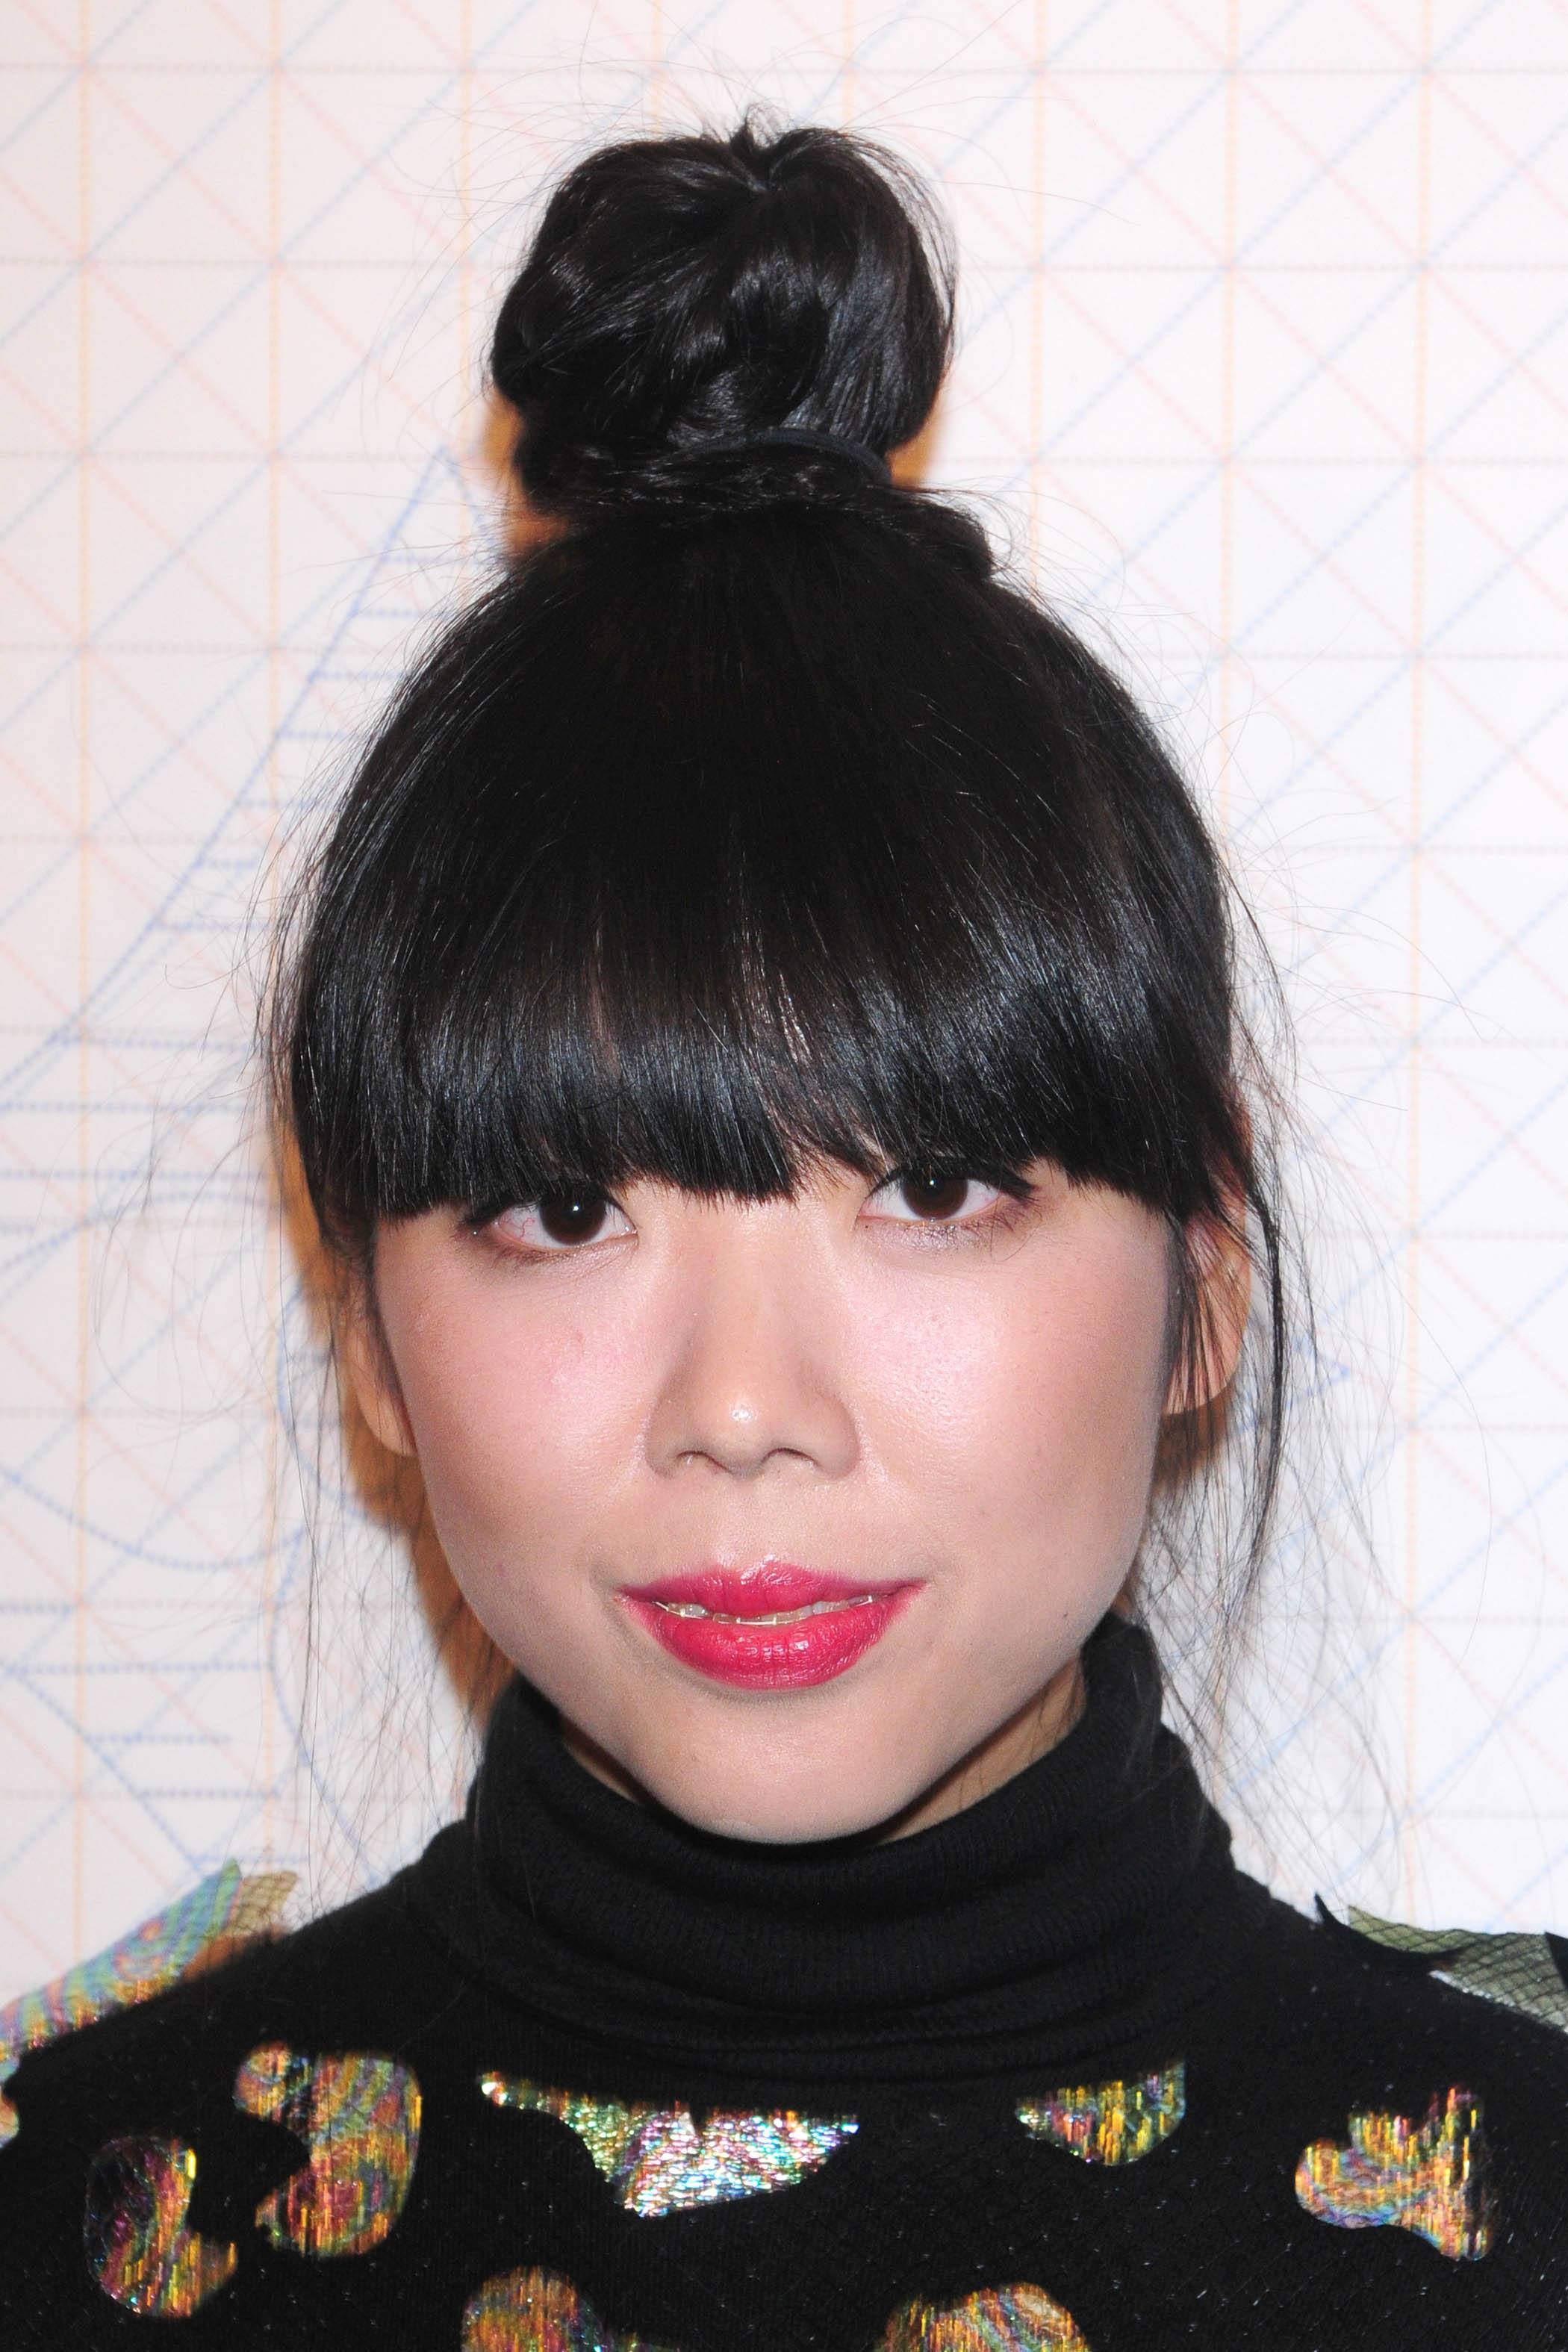 2017 hairstyles: All Things Hair - IMAGE - Susie Bubble updo bun fringe